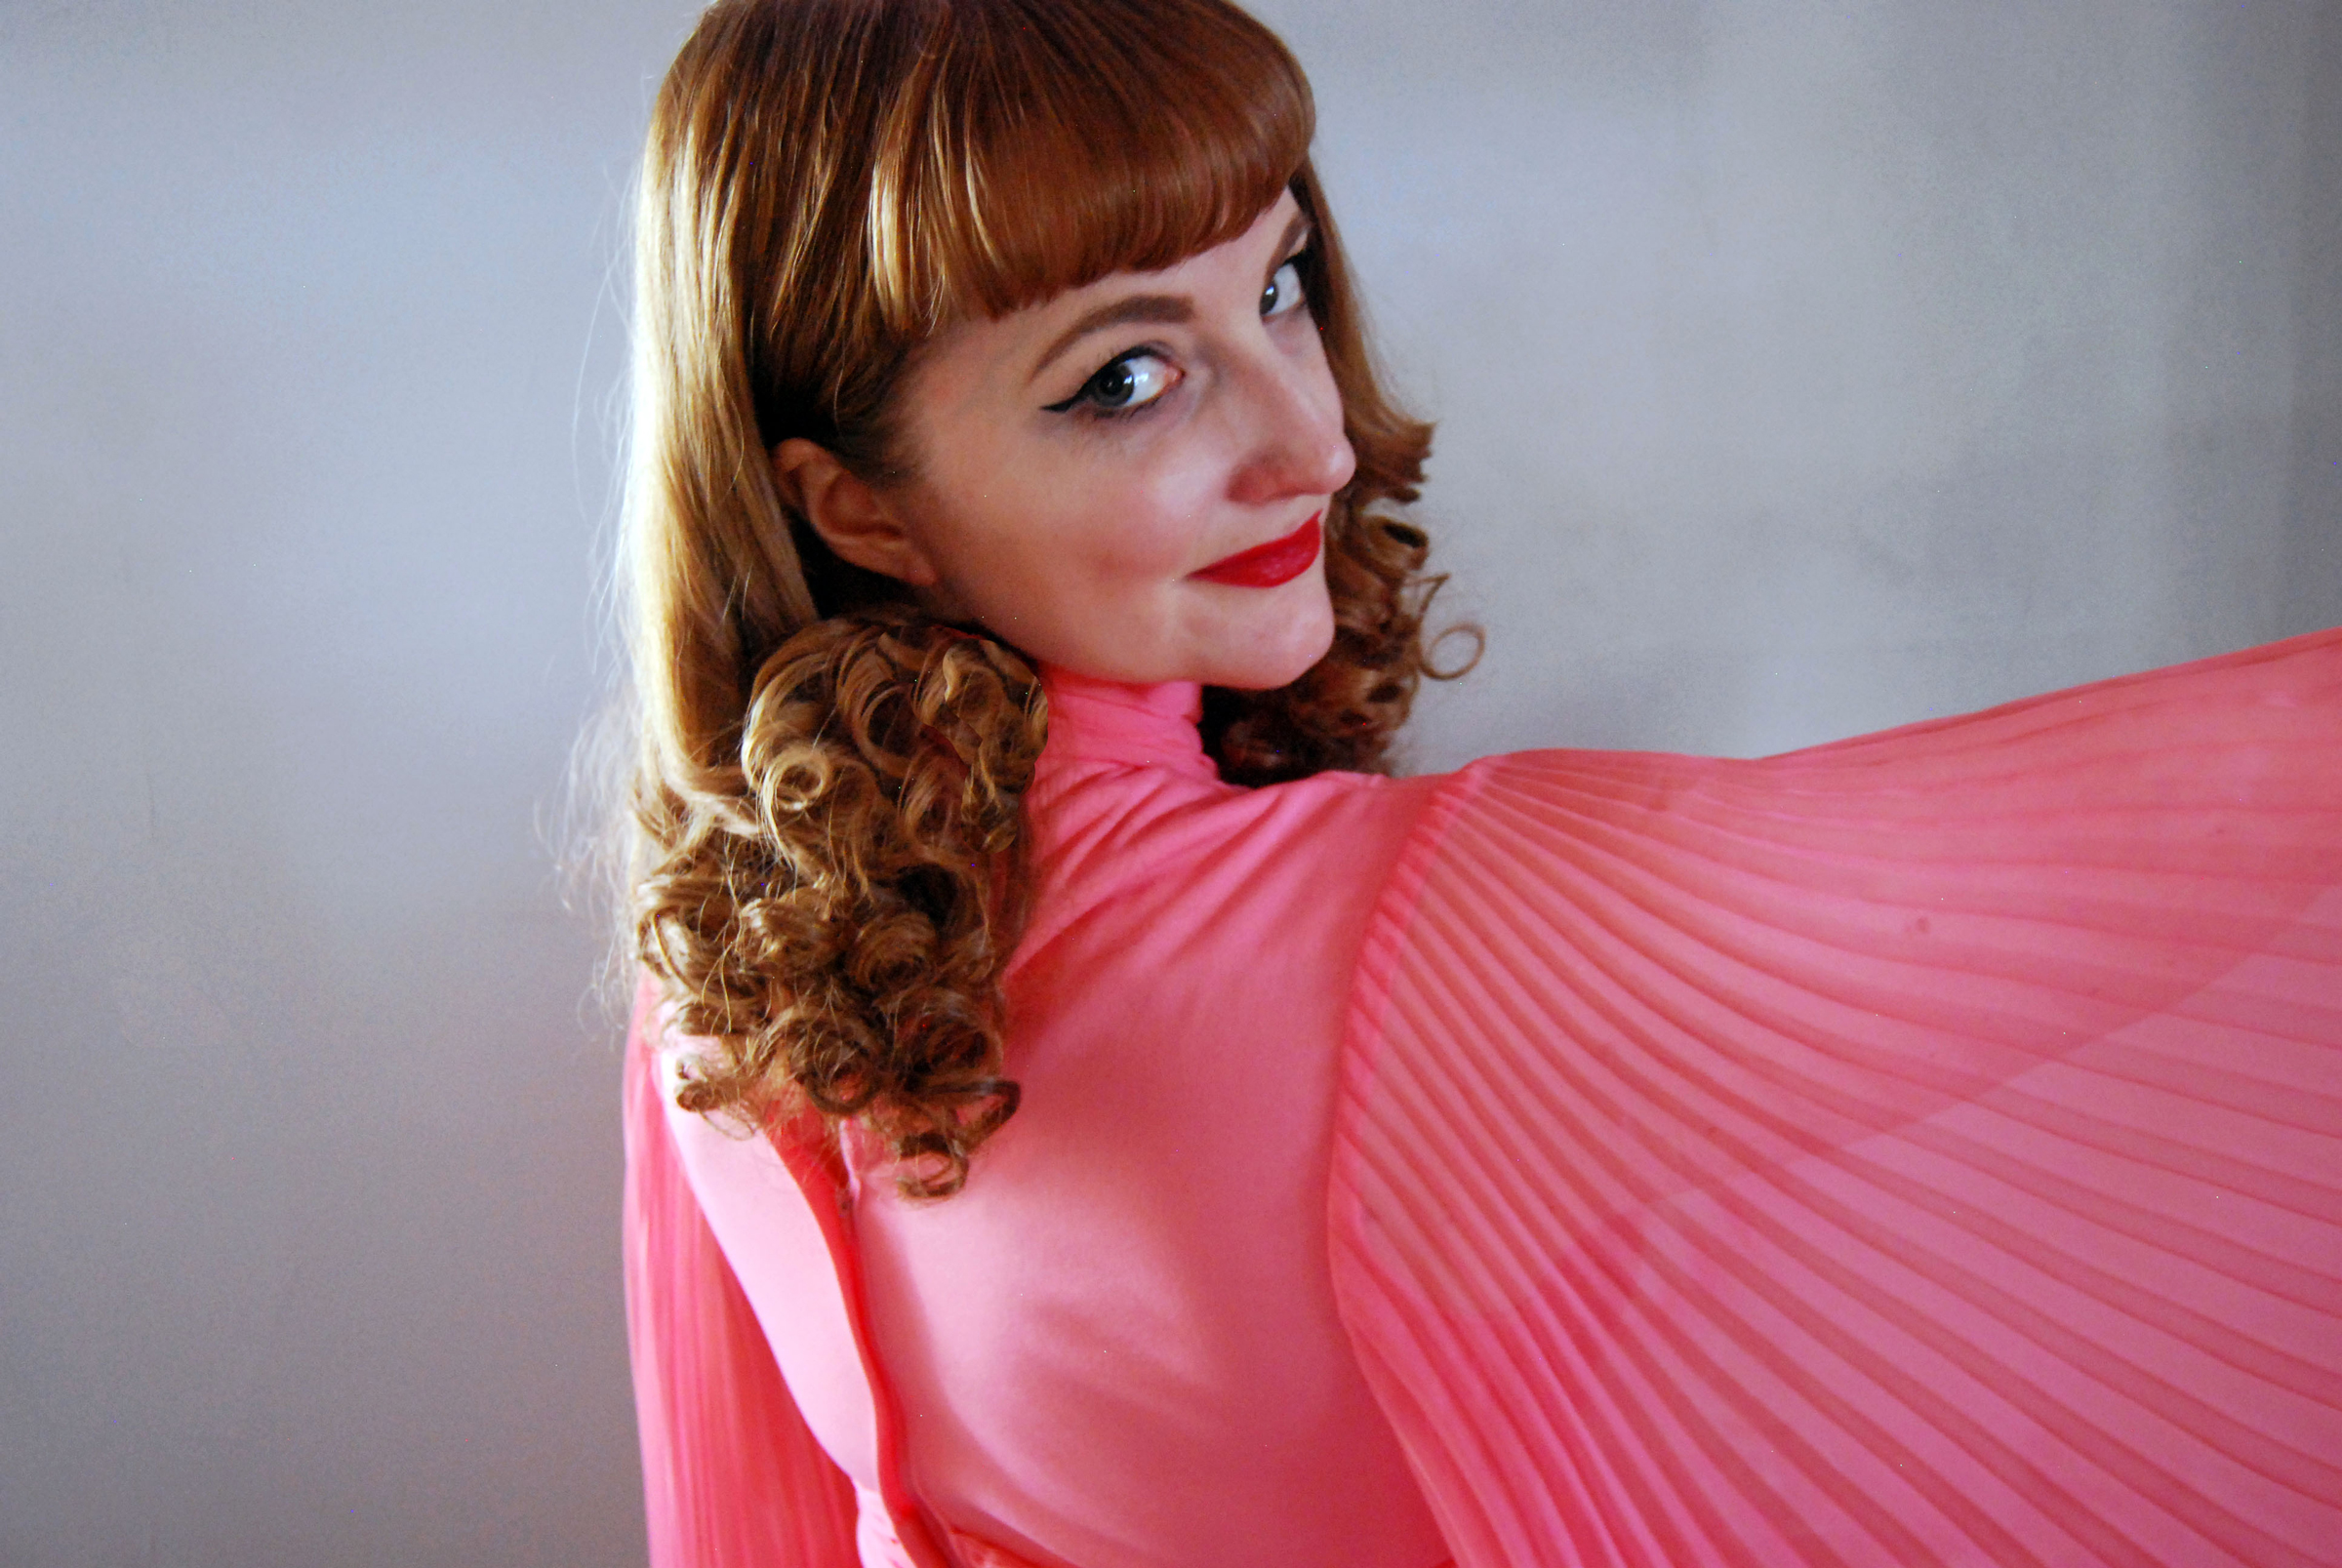 Amy Baird shows off her pink accordion sleeve vintage find.